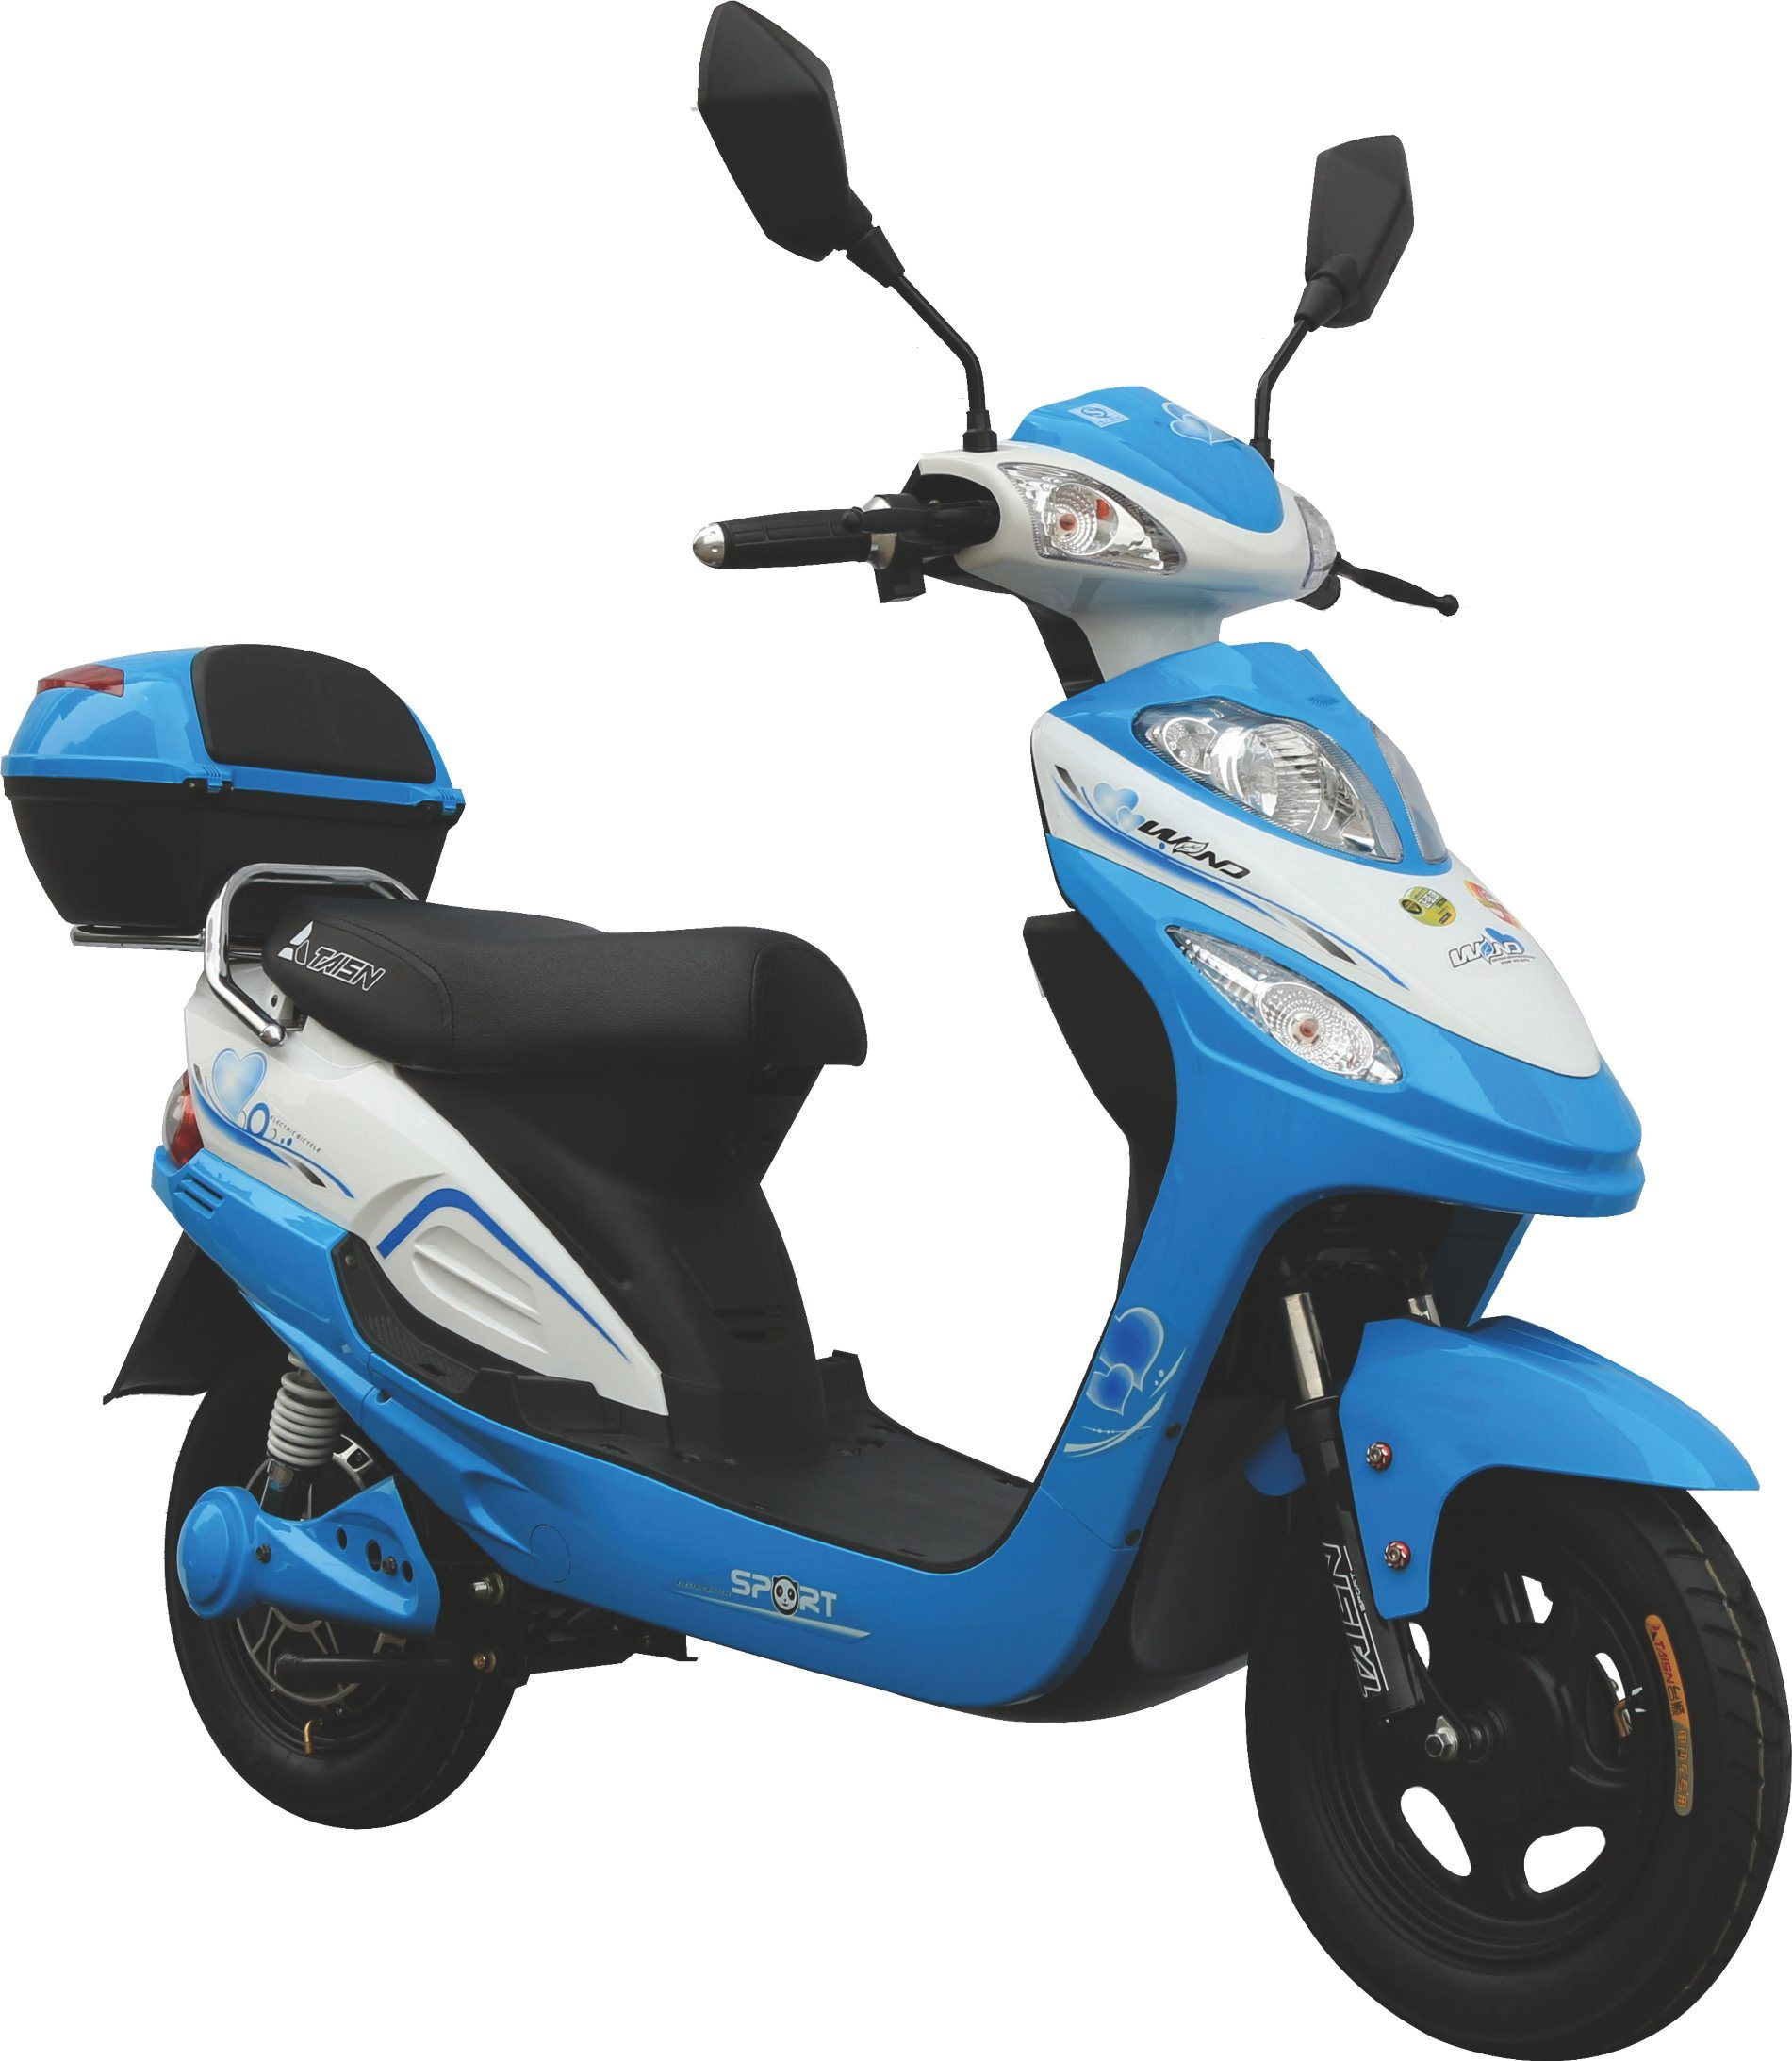 2017 Lady Model 350W Rang 40km Electric Scooter for Sale